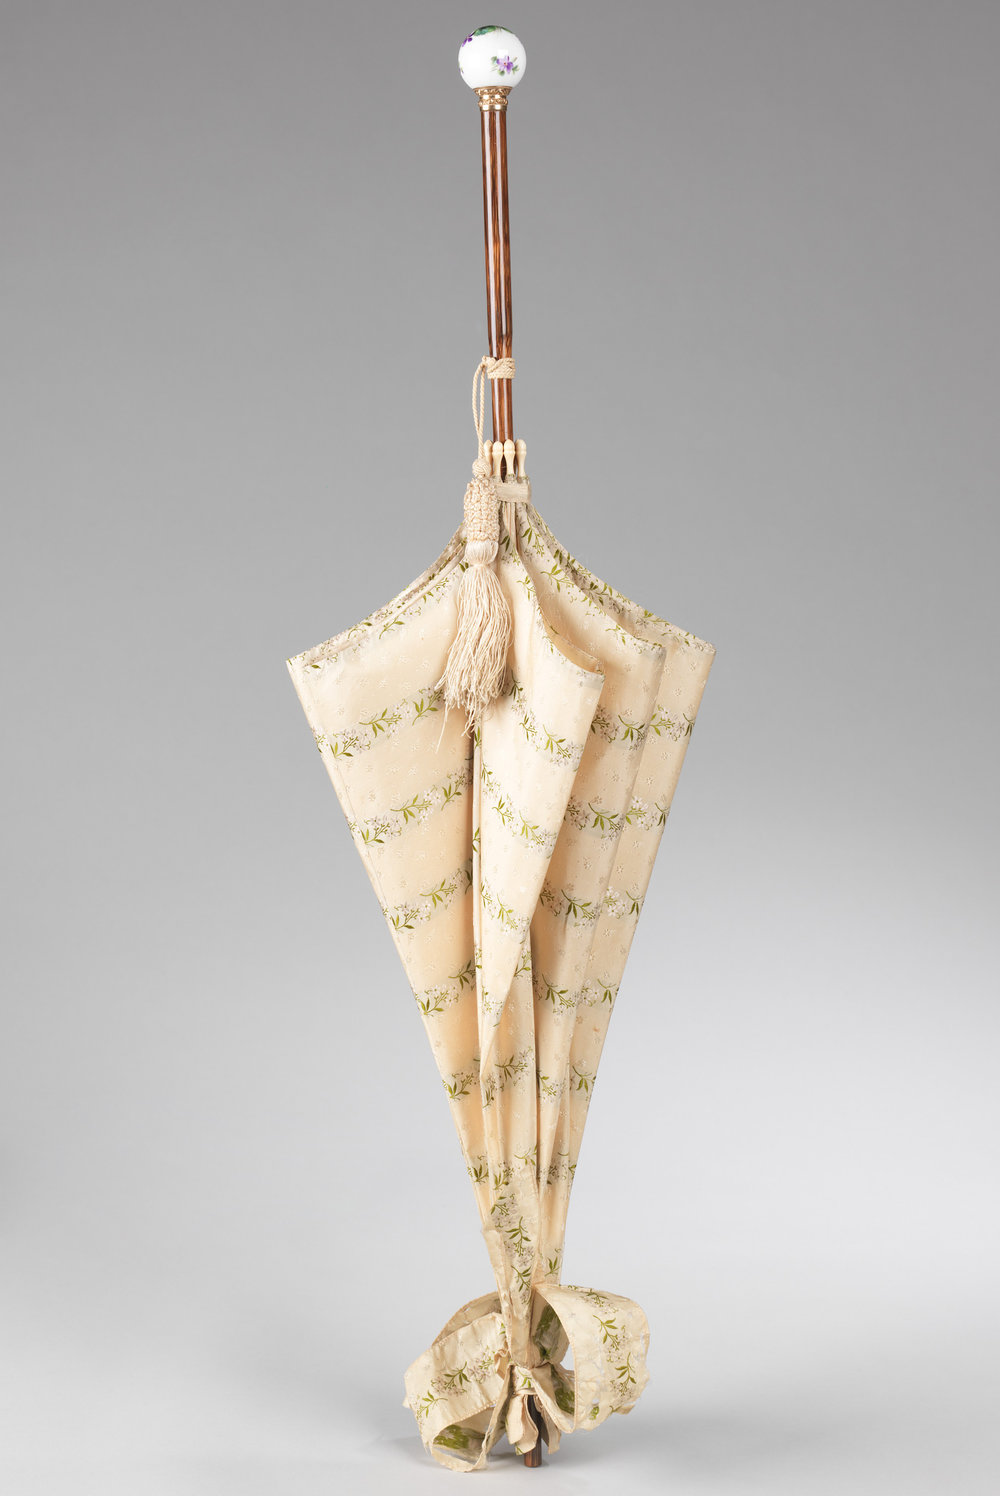 1880-89, probably French.  Brooklyn Museum Costume Collection at the Metropolitan Museum of Art.